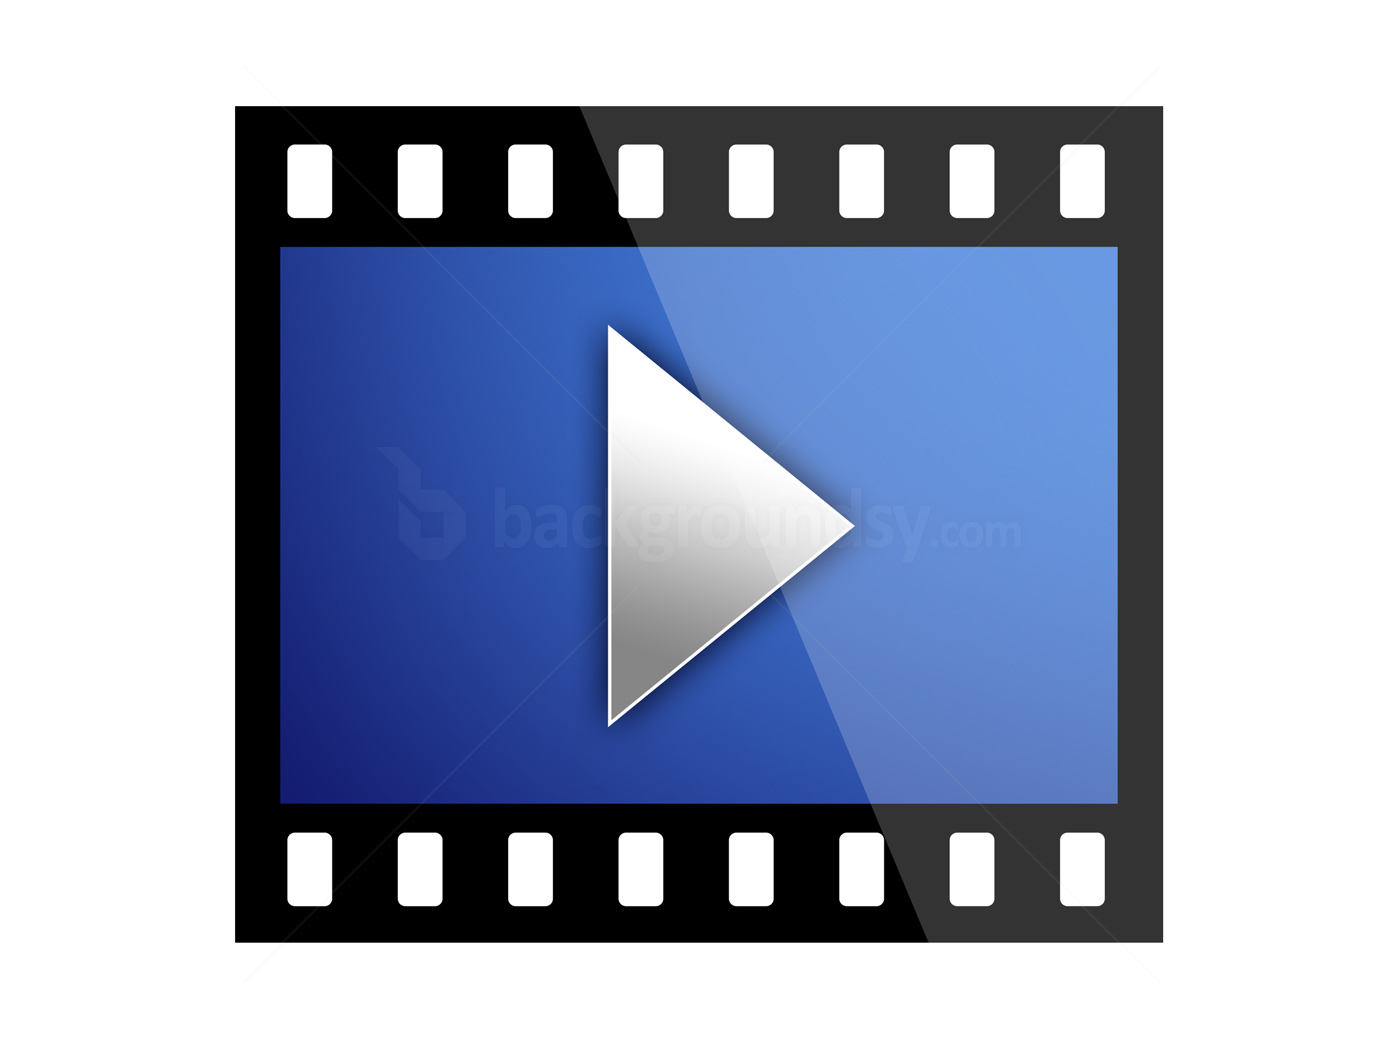 Download Video Icon image #8047